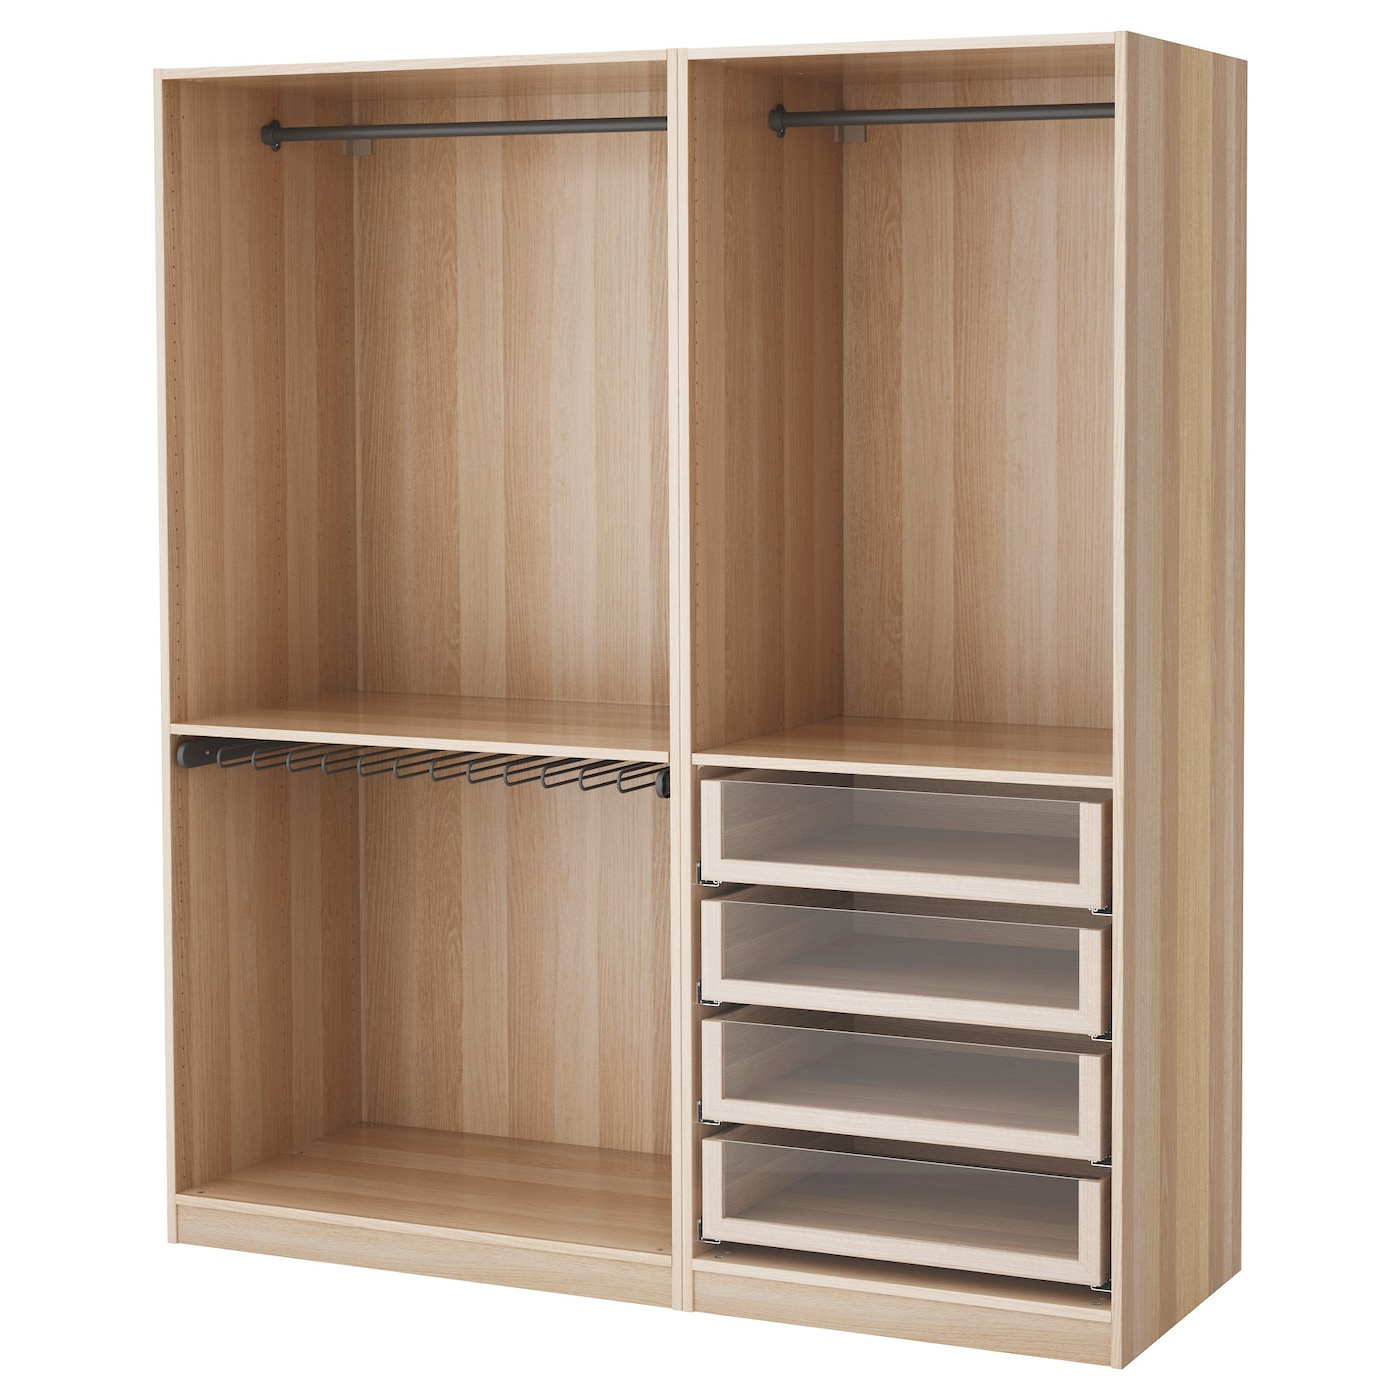 pax wardrobe white stained oak effect 175x58x201 cm ikea. Black Bedroom Furniture Sets. Home Design Ideas